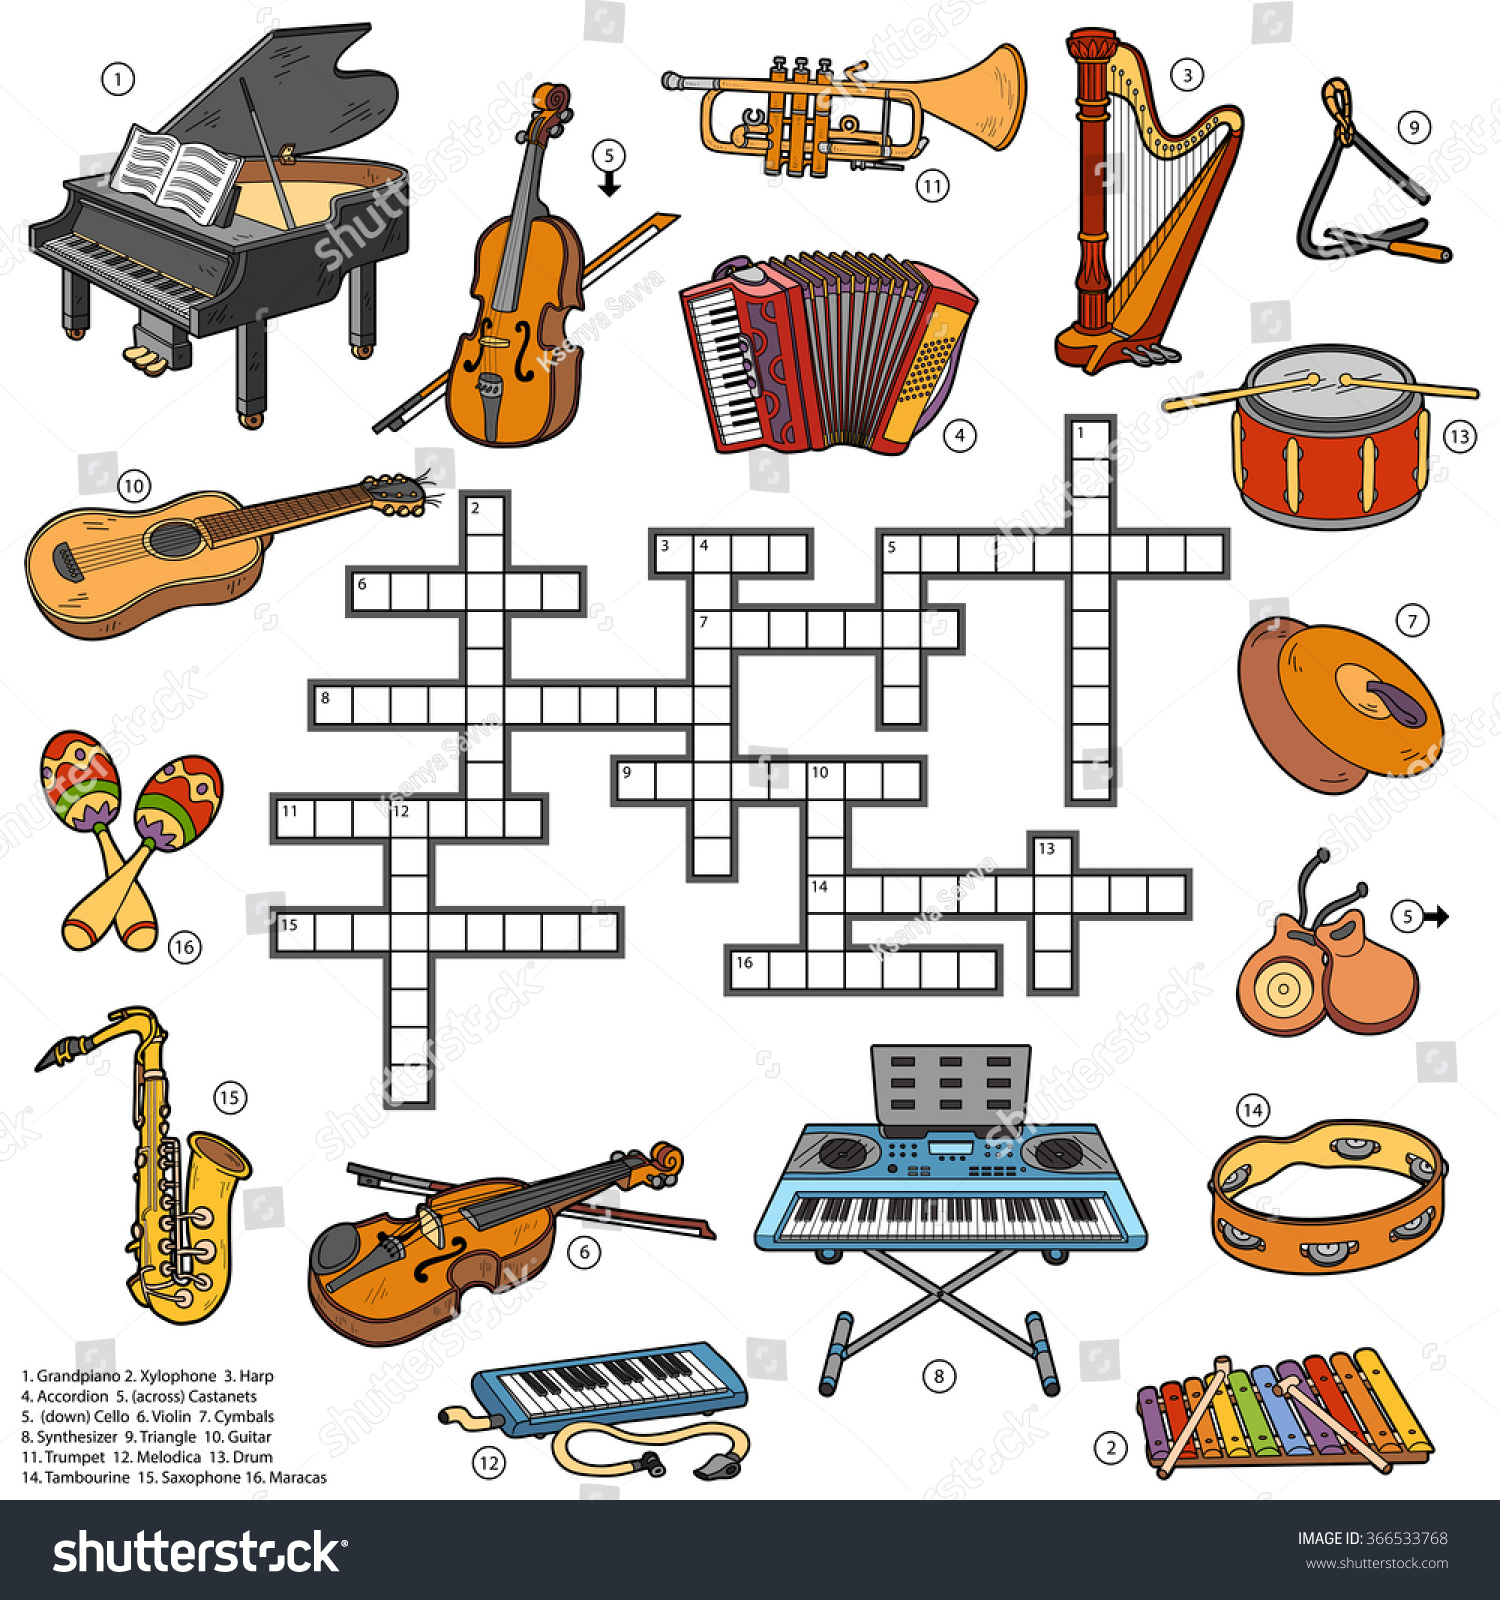 Color crossword education game for children about music instruments